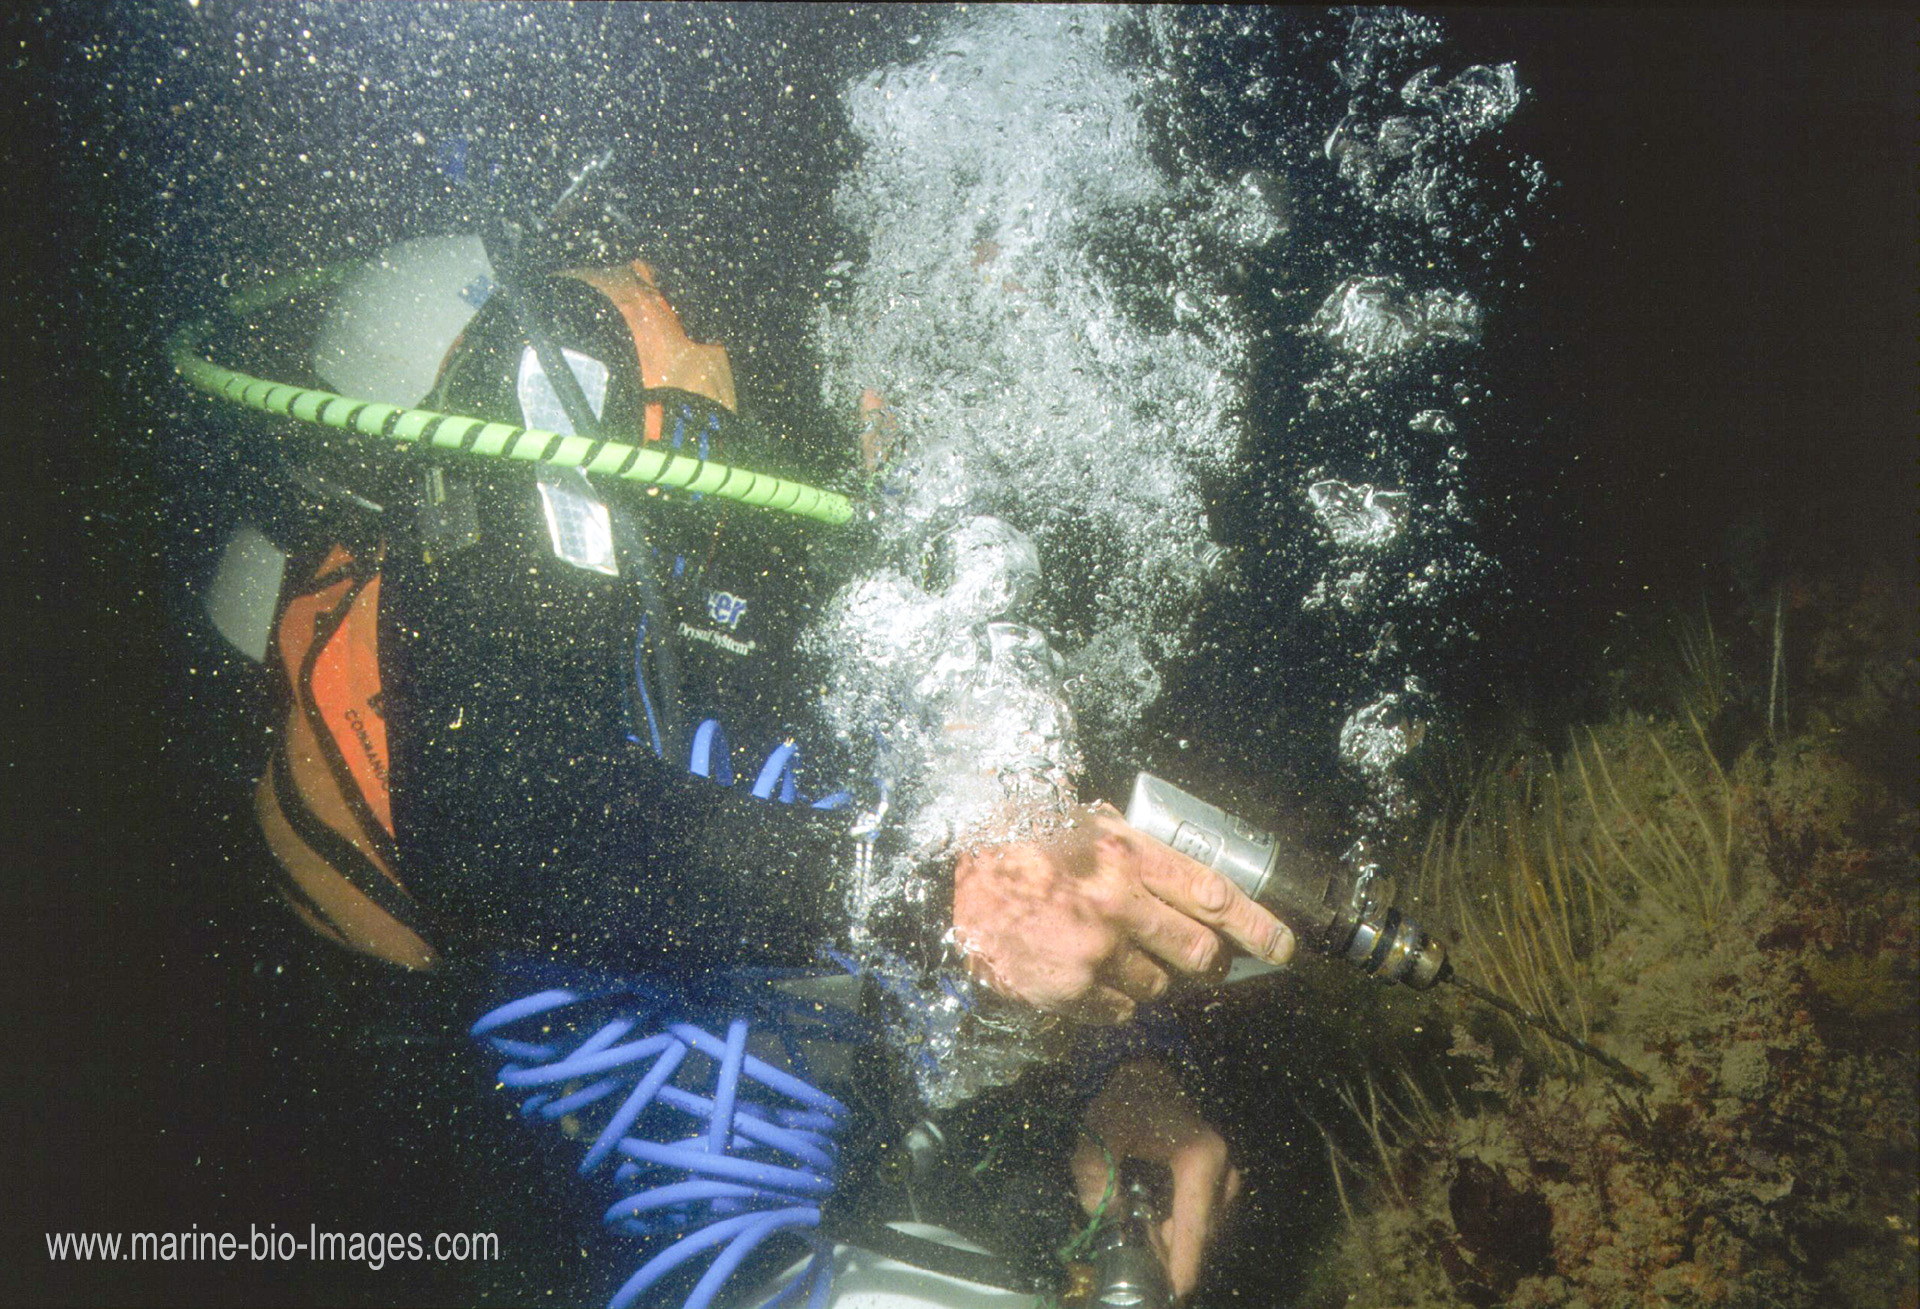 Marine biologist Colin Munro using an underwater pneumatic drill to create piton holes for an underwater monitoring station, following the Sea Empress oil spill. www.marine-bio-images.com www.colinmunrophotography.com